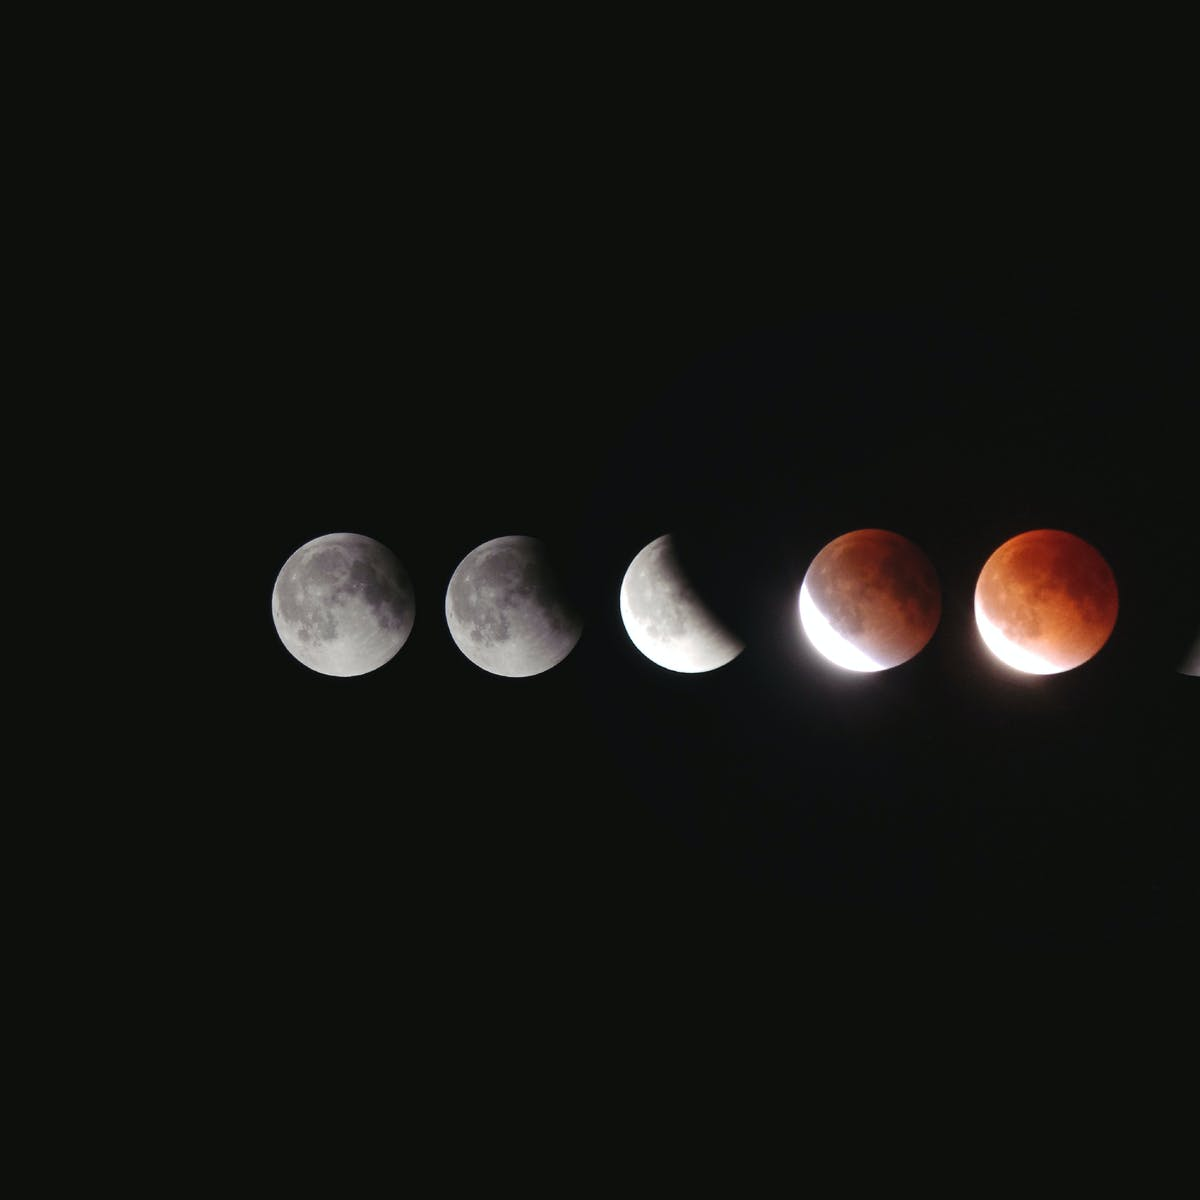 Martian Views and a Lunar Eclipse: July 27 Is the Best Night to Look Up